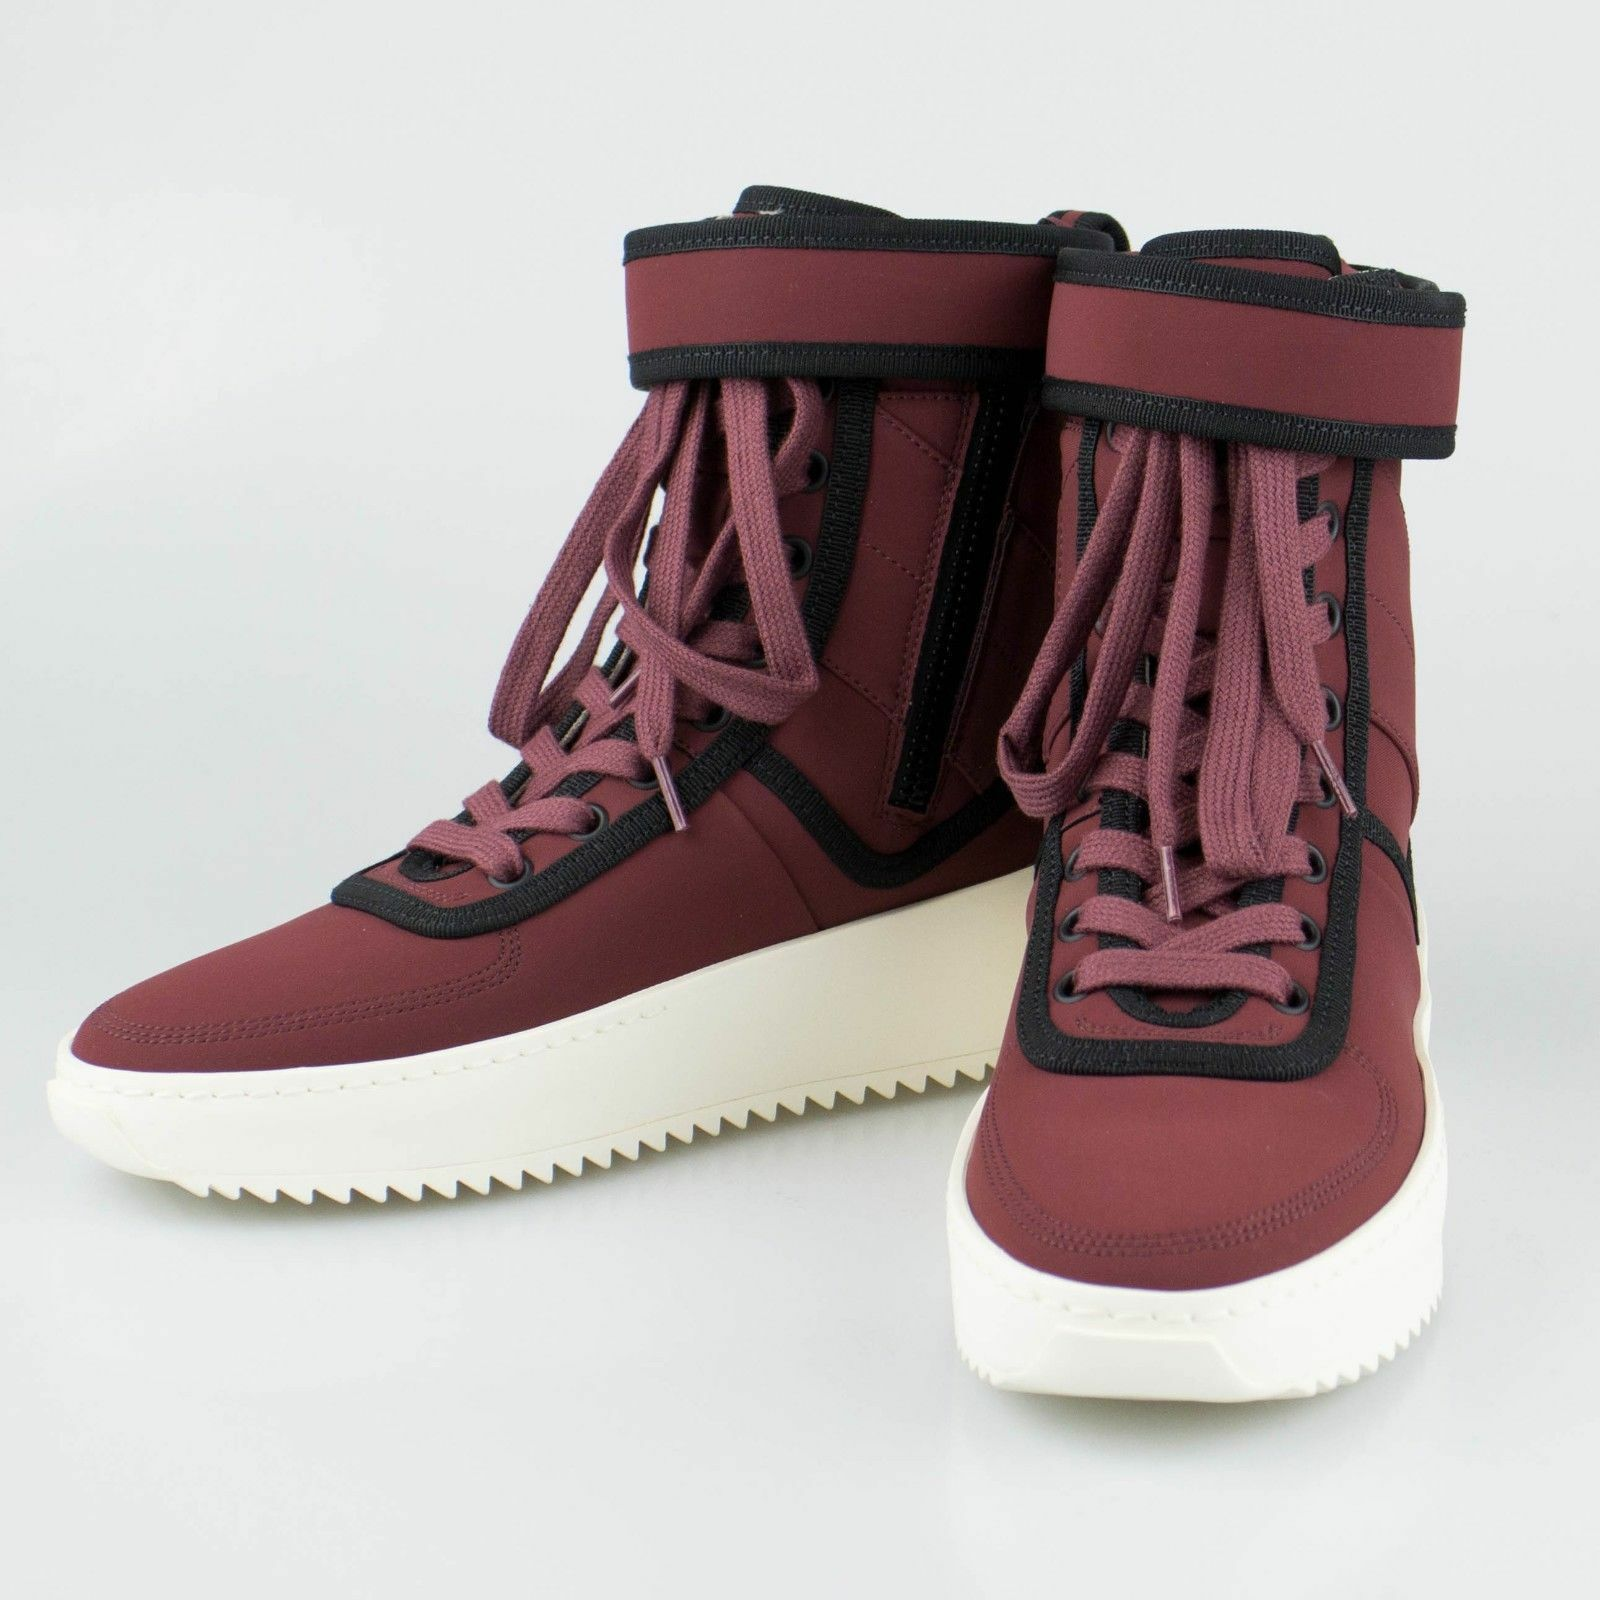 NIB FEAR OF GOD 'Military Sneaker' Burgundy Hi-Top Sneakers shoes 8 38  1120